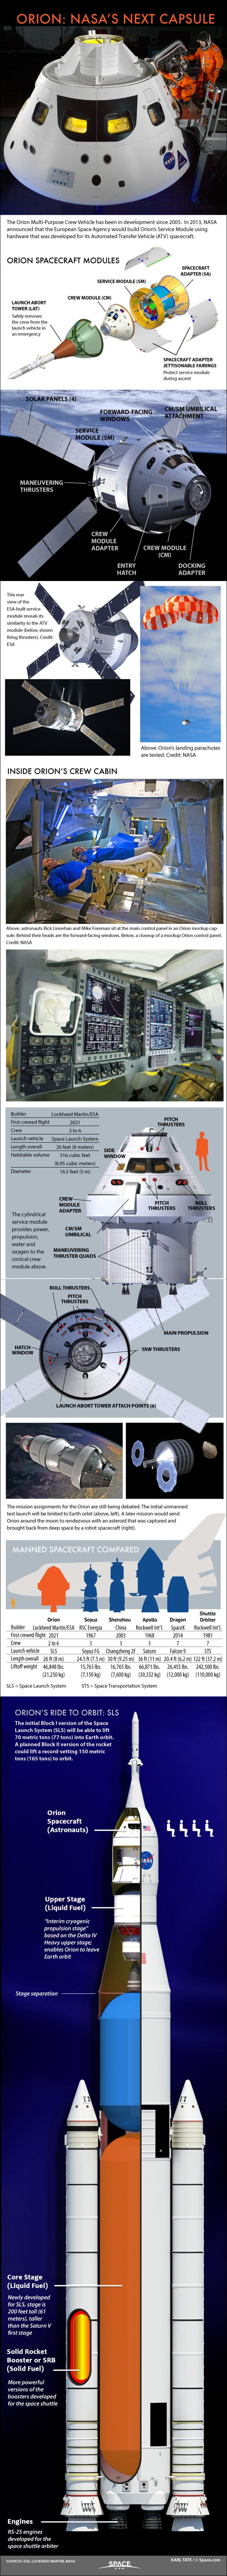 Details of the Orion four-person capsule that could carry crews to the Moon or an asteroid, beginning in 2021.